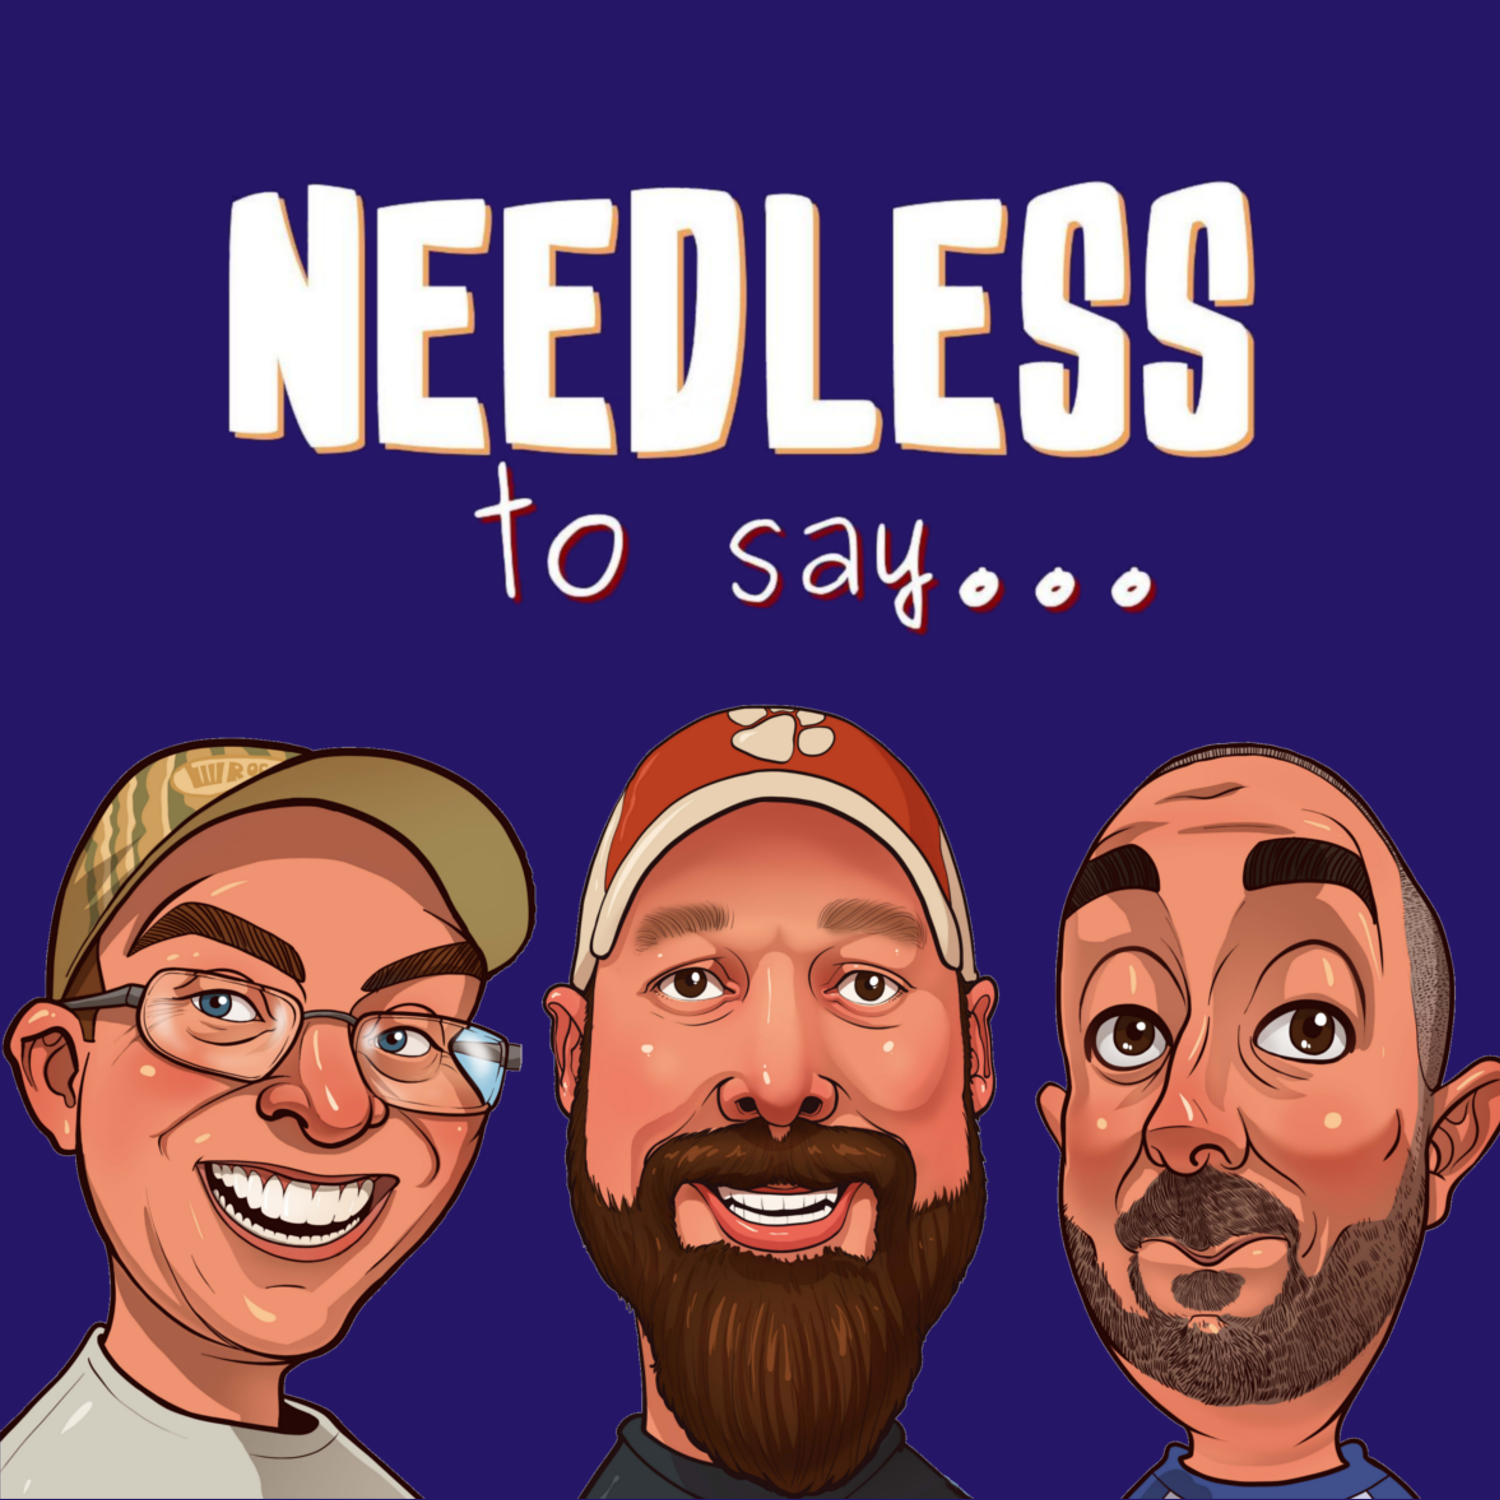 Needless to say… Podcast